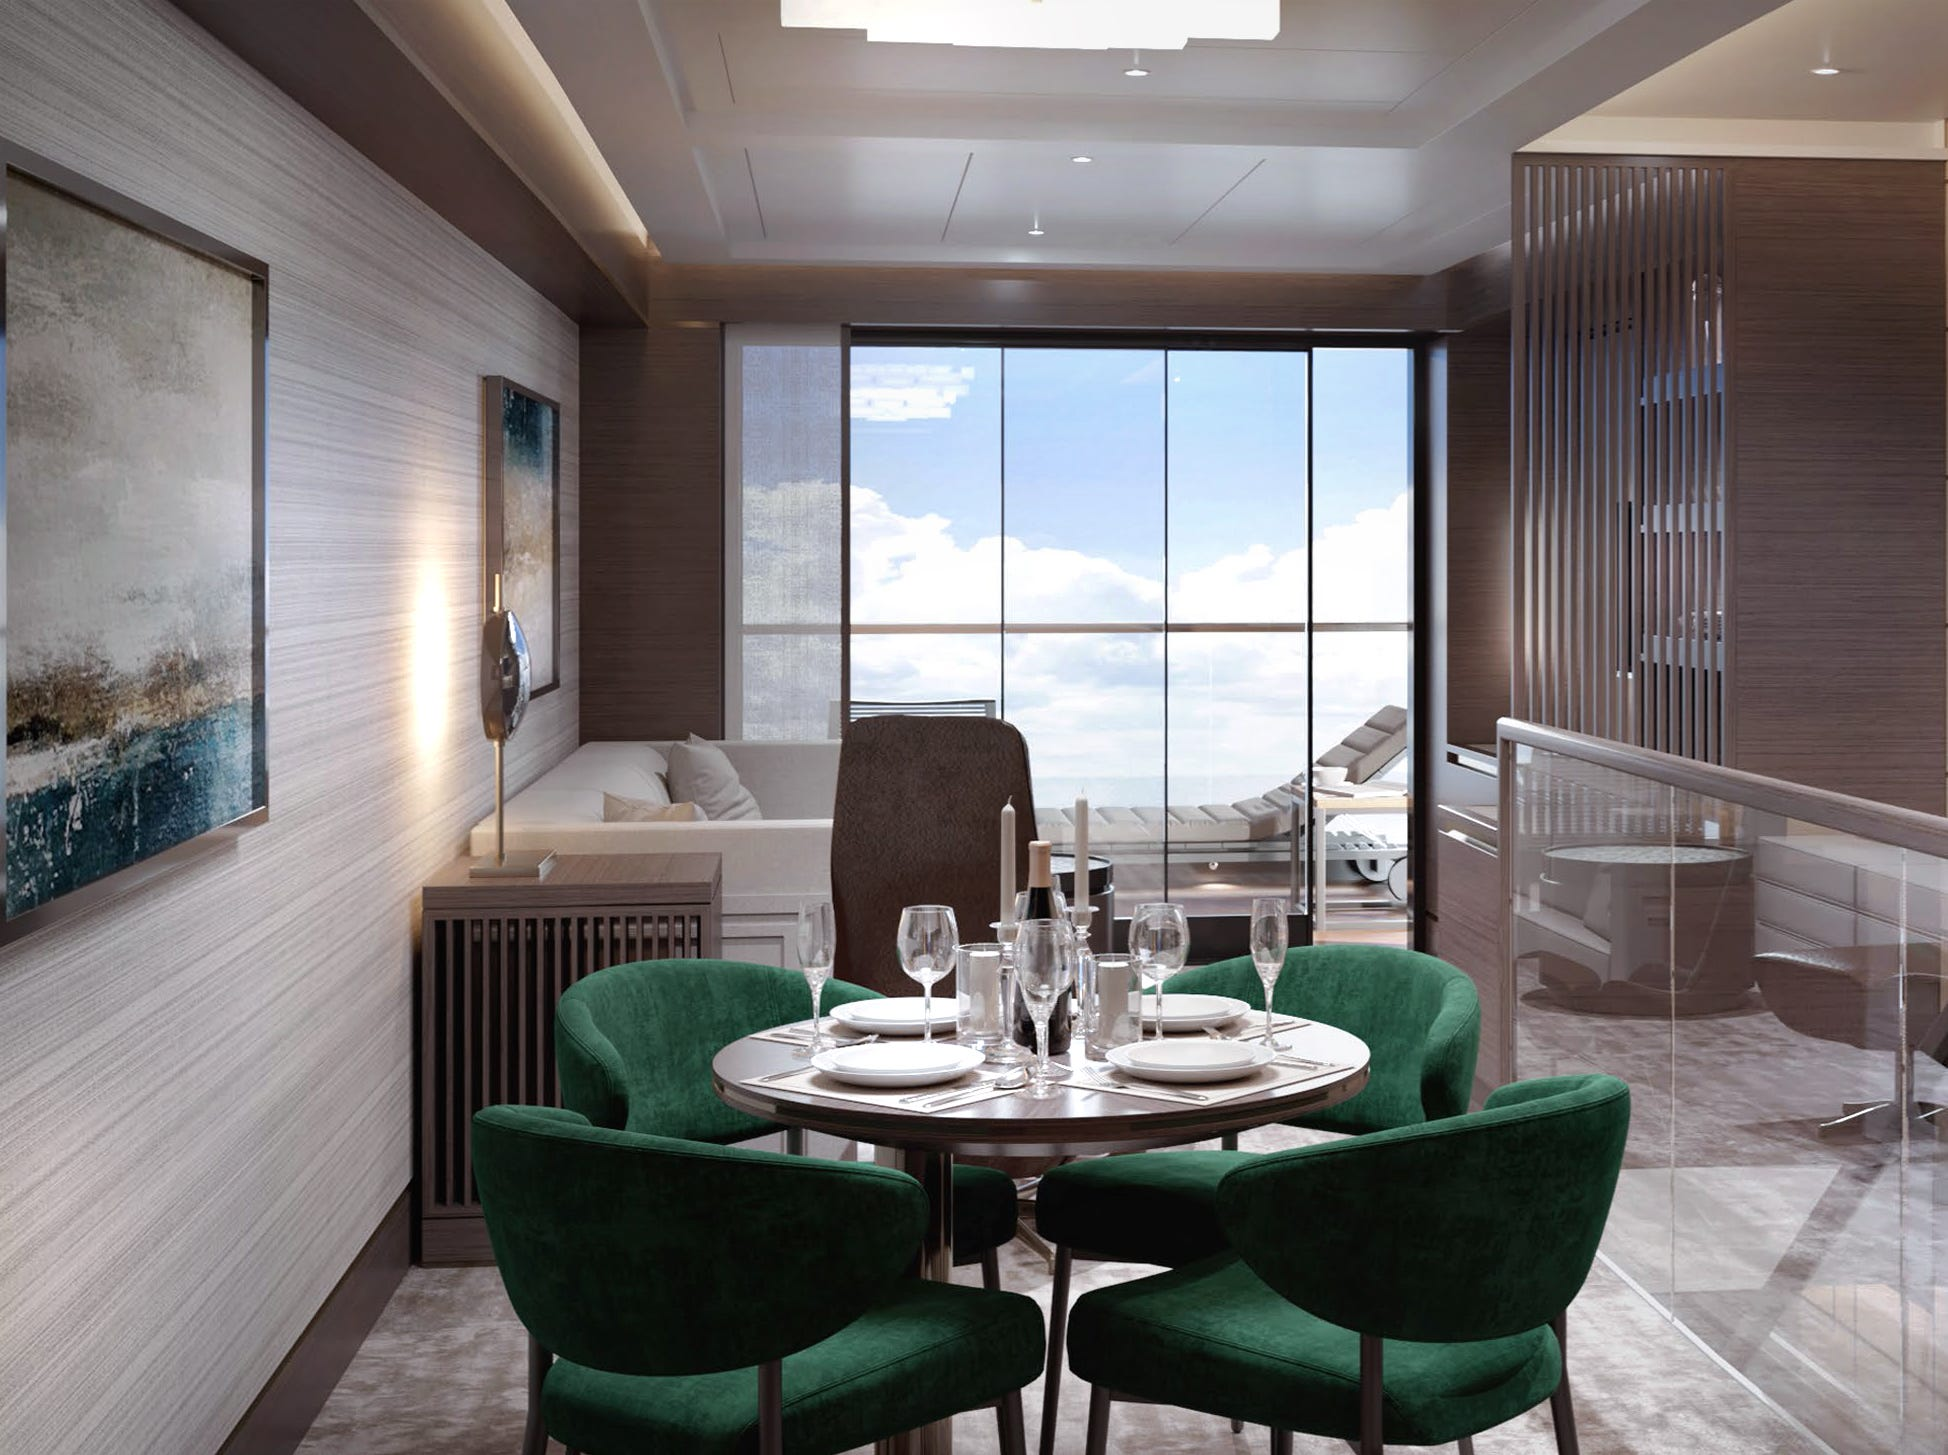 Hotel chain Ritz-Carlton is developing a cruise line called The Ritz-Carlton Yacht Collection that will debut in 2019. The line's first vessel will carry 298 passengers.